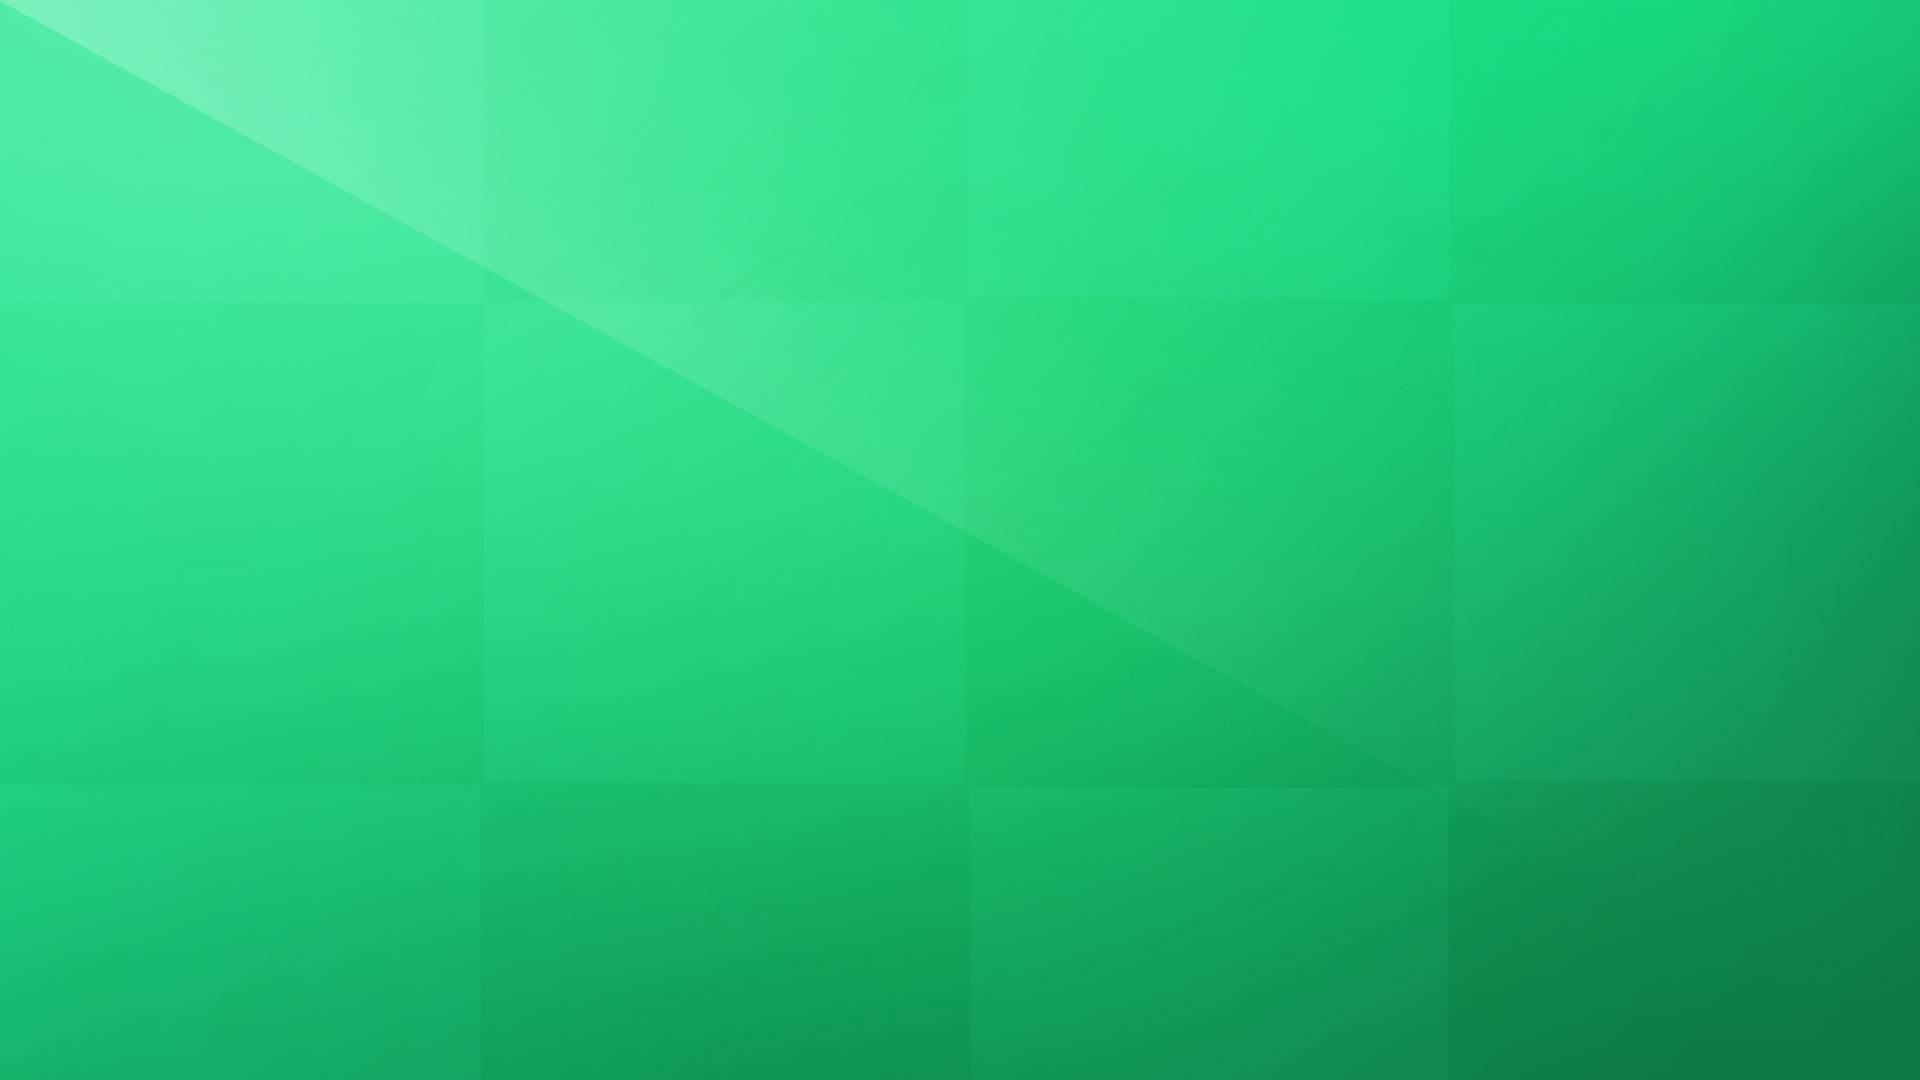 1920x1080 Plain Neon Green Background Solid neon gre